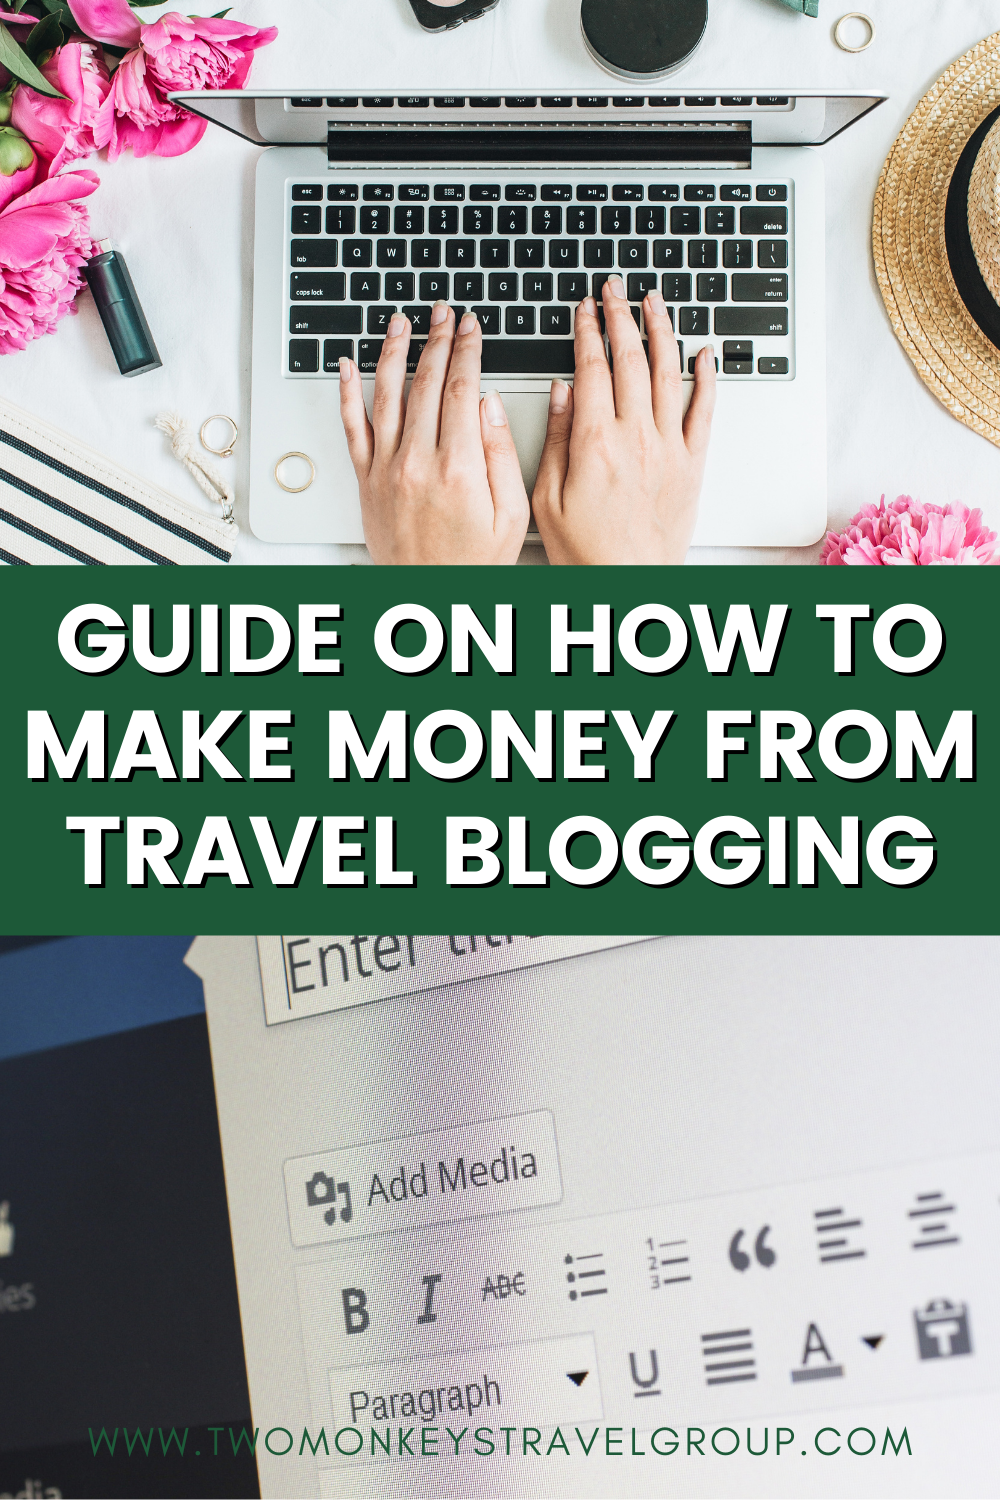 How to Make Money from Travel Blogging (Monetize your Travel Blog)